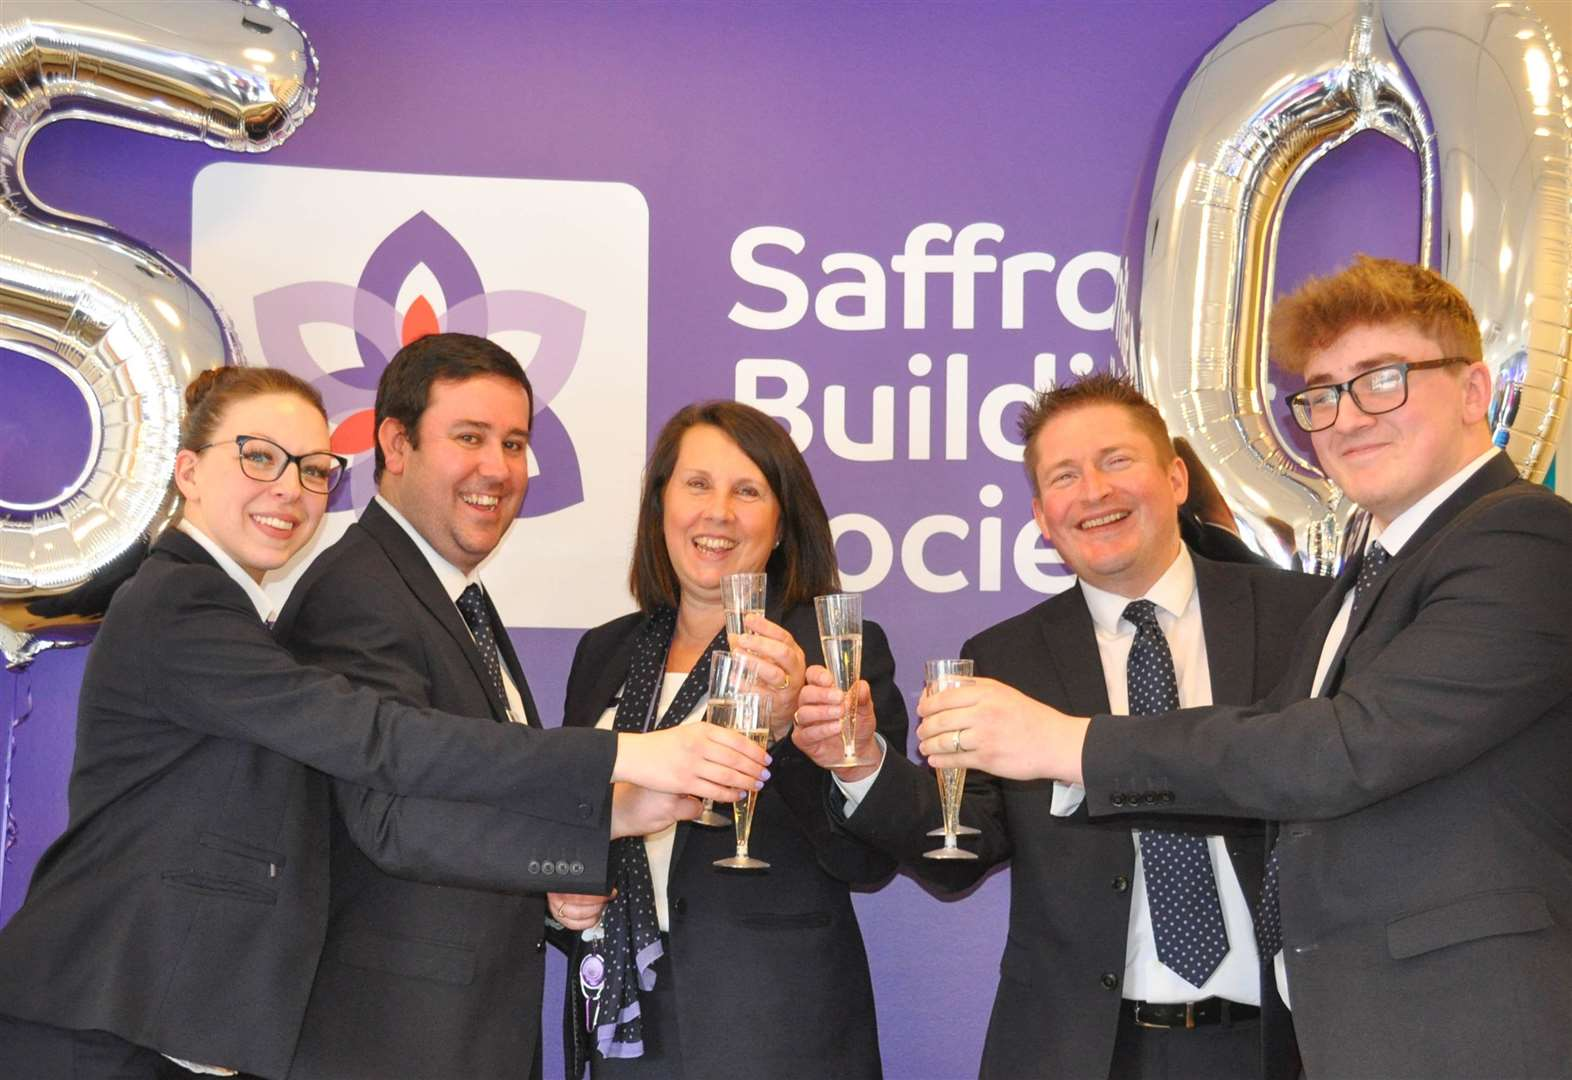 Building society's branch clocks up 50 years in town